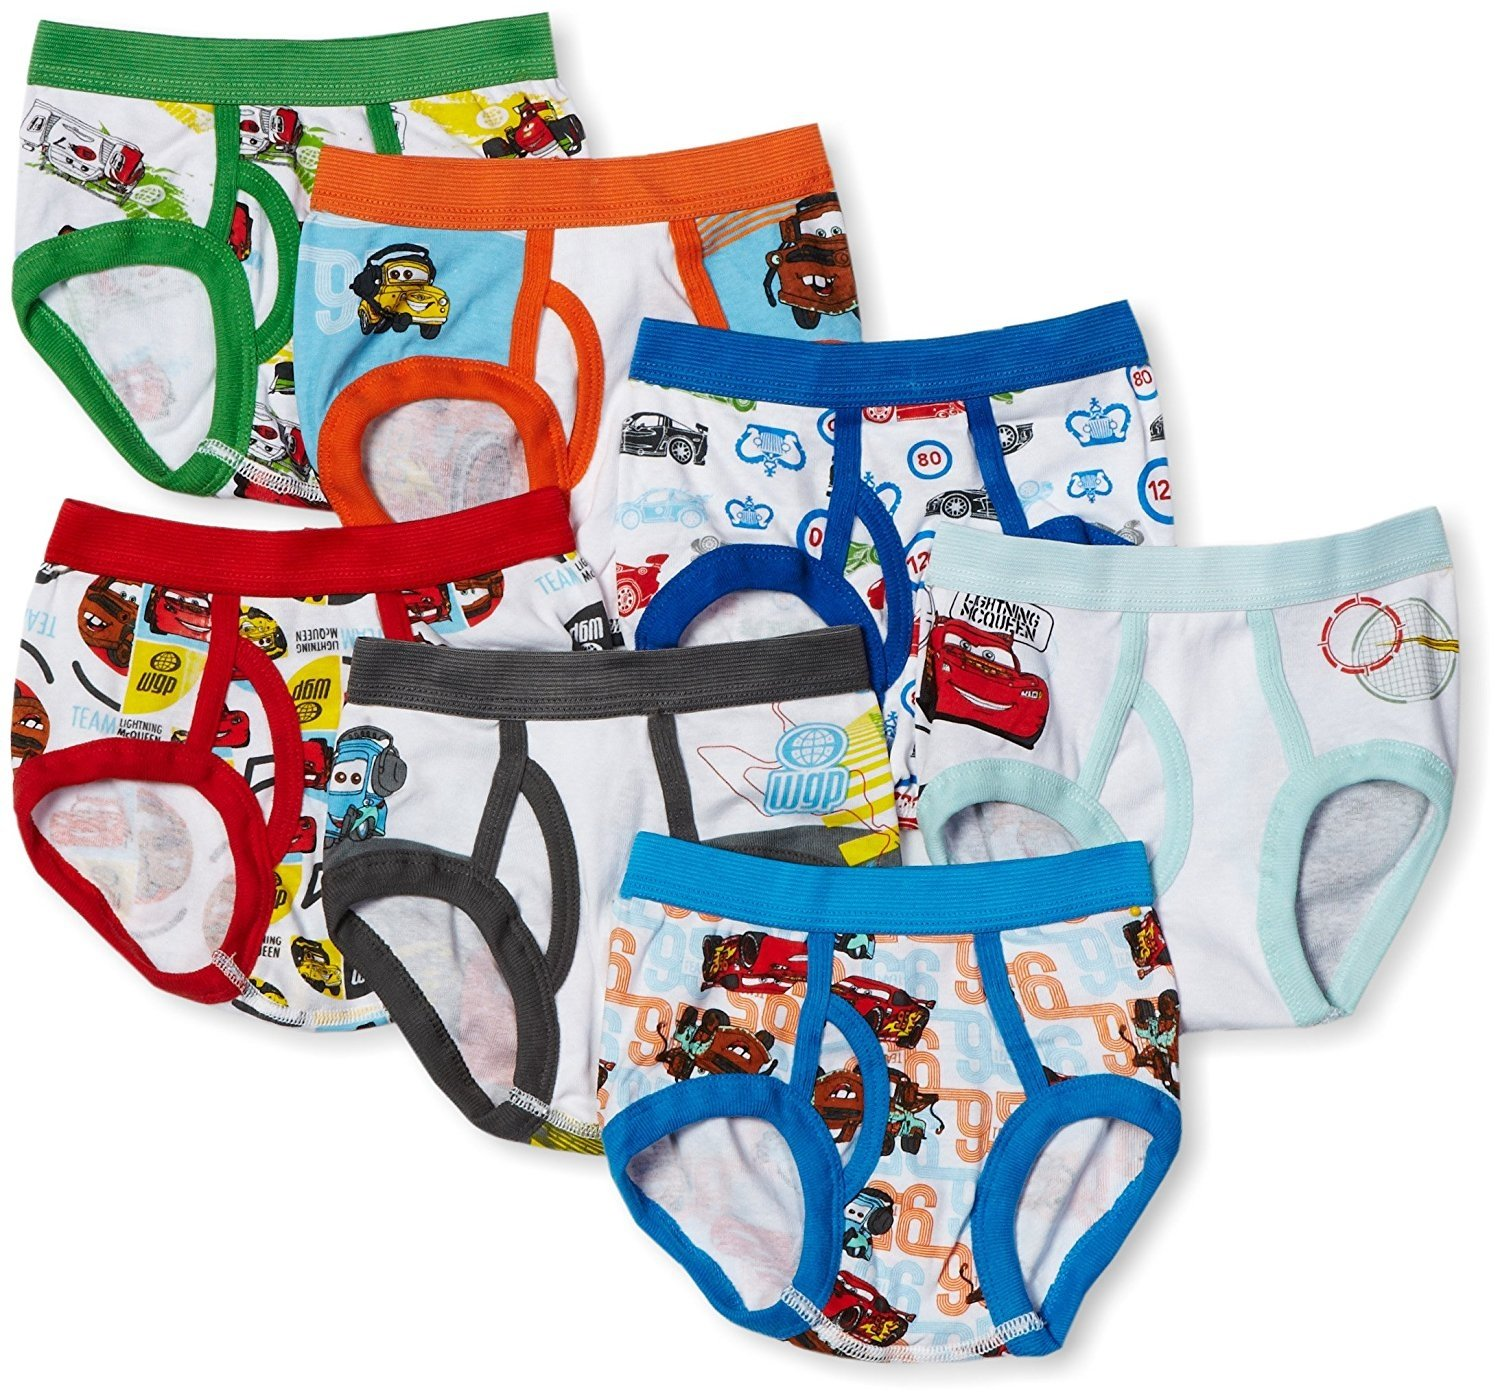 DISNEY CARS 7-pack Toddler Boys Briefs Sizes 2T/3T, 4T NEW ...